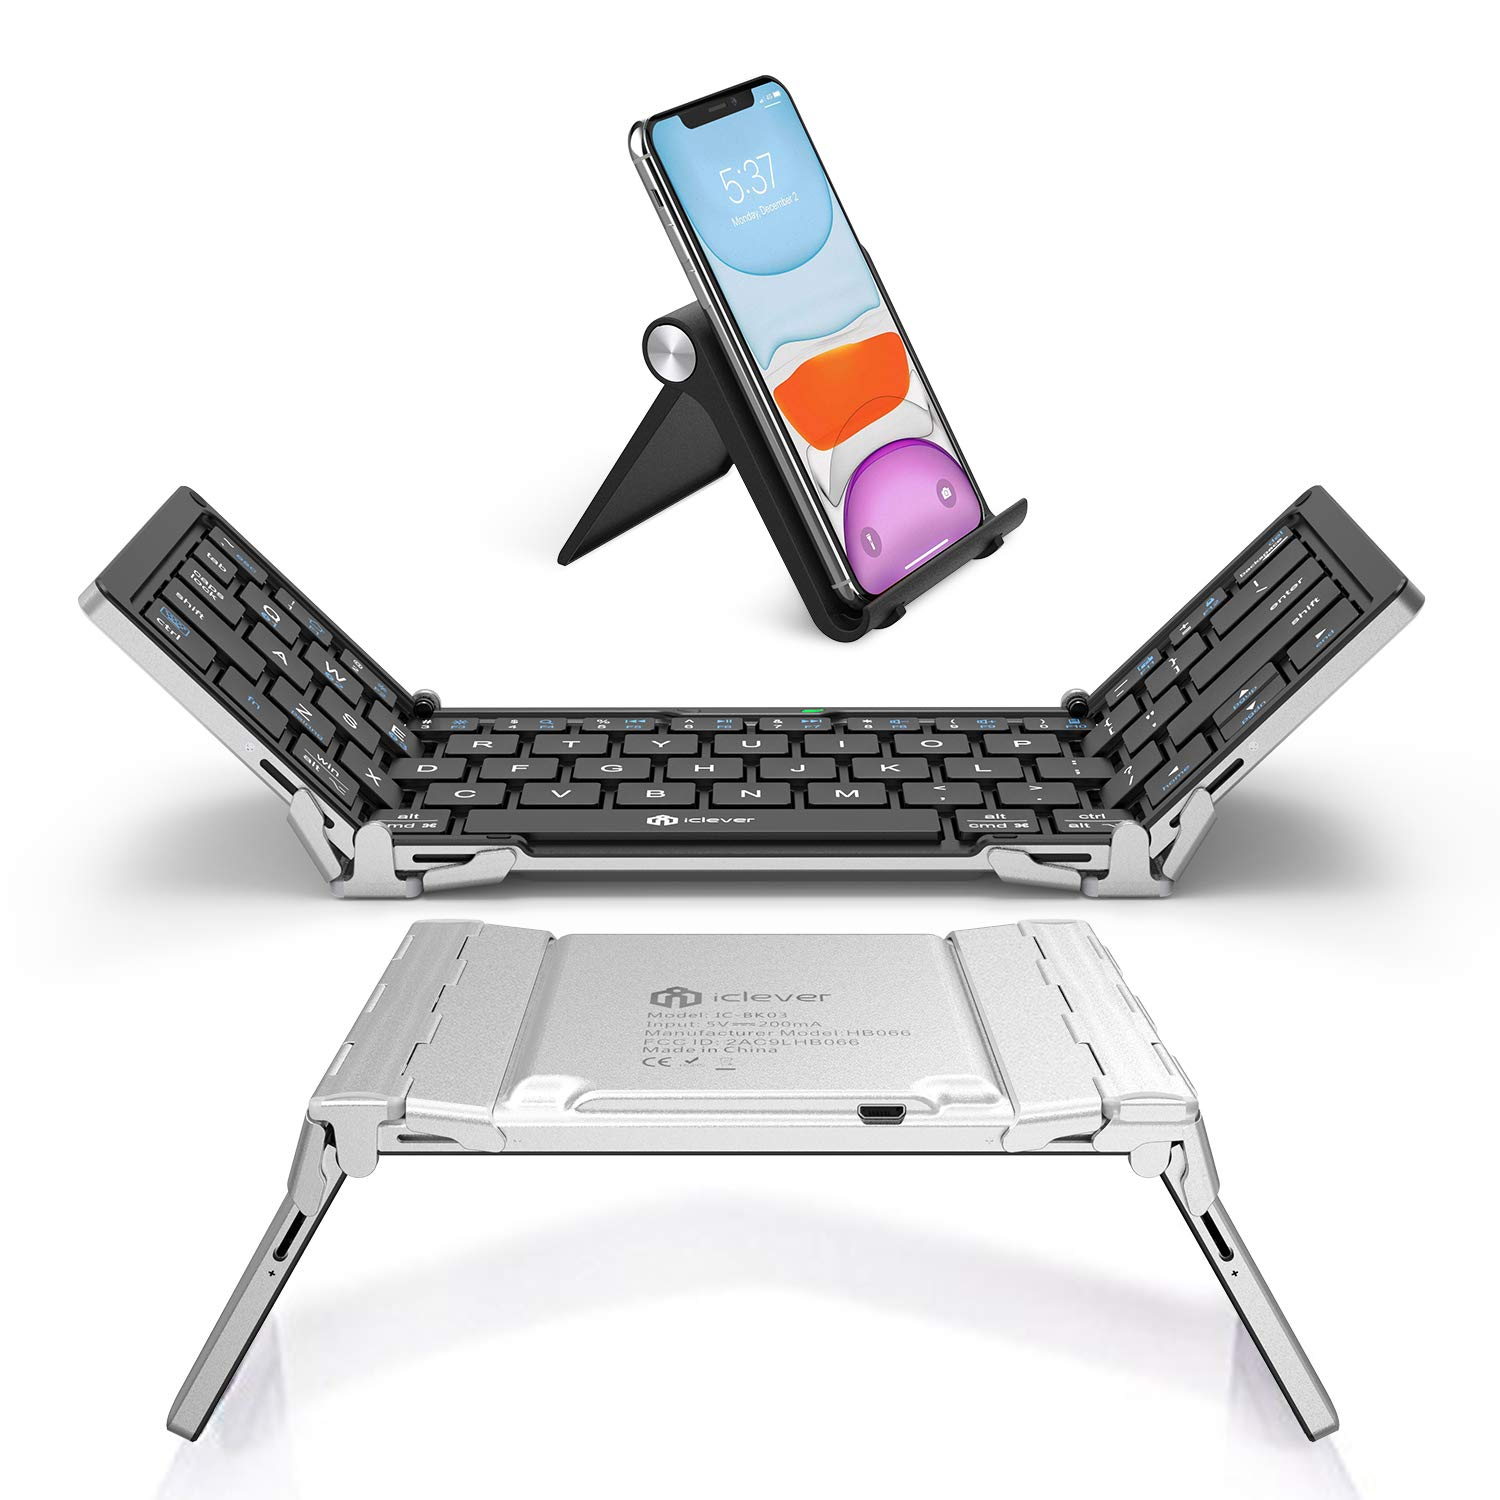 iClever BK03 Bluetooth Keyboard, Bluetooth 5.1 Foldable Wireless Keyboard with Portable Pocket Size, Aluminum Alloy Housing, Carrying Pouch, for iOS Windows Android Tablets, Laptops and Smartphones